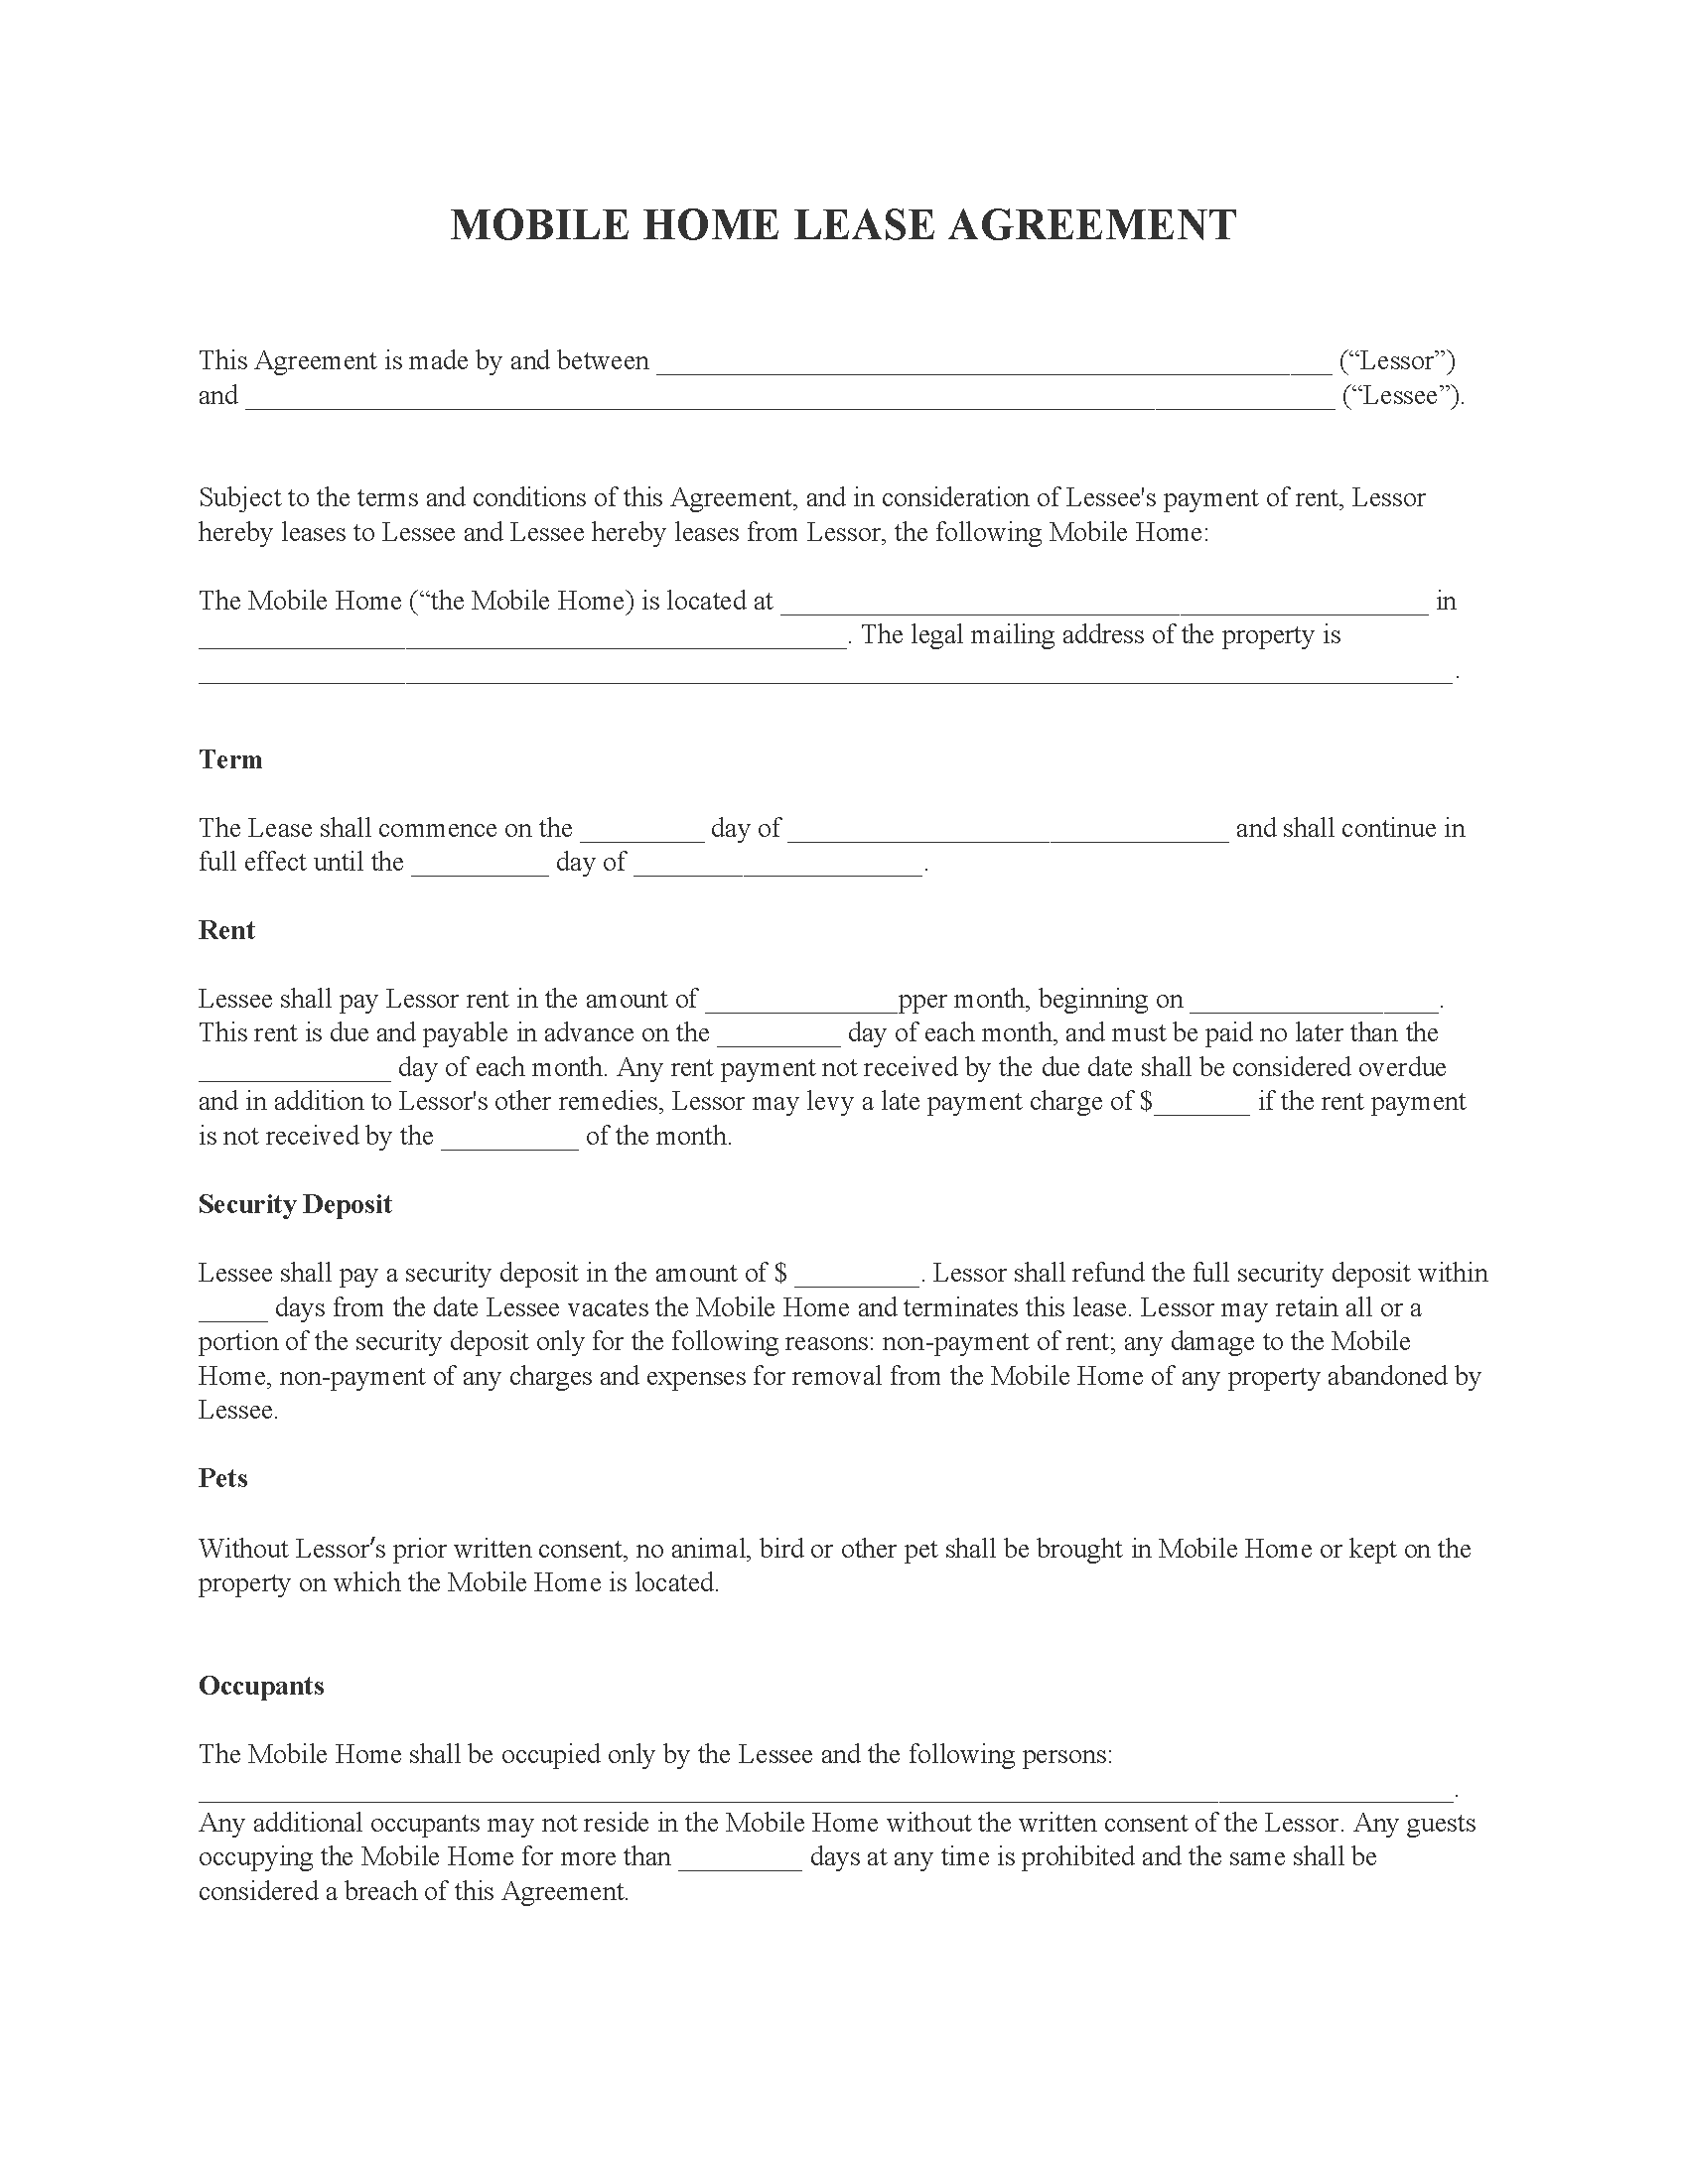 Mobile Home Lease Agreement Form